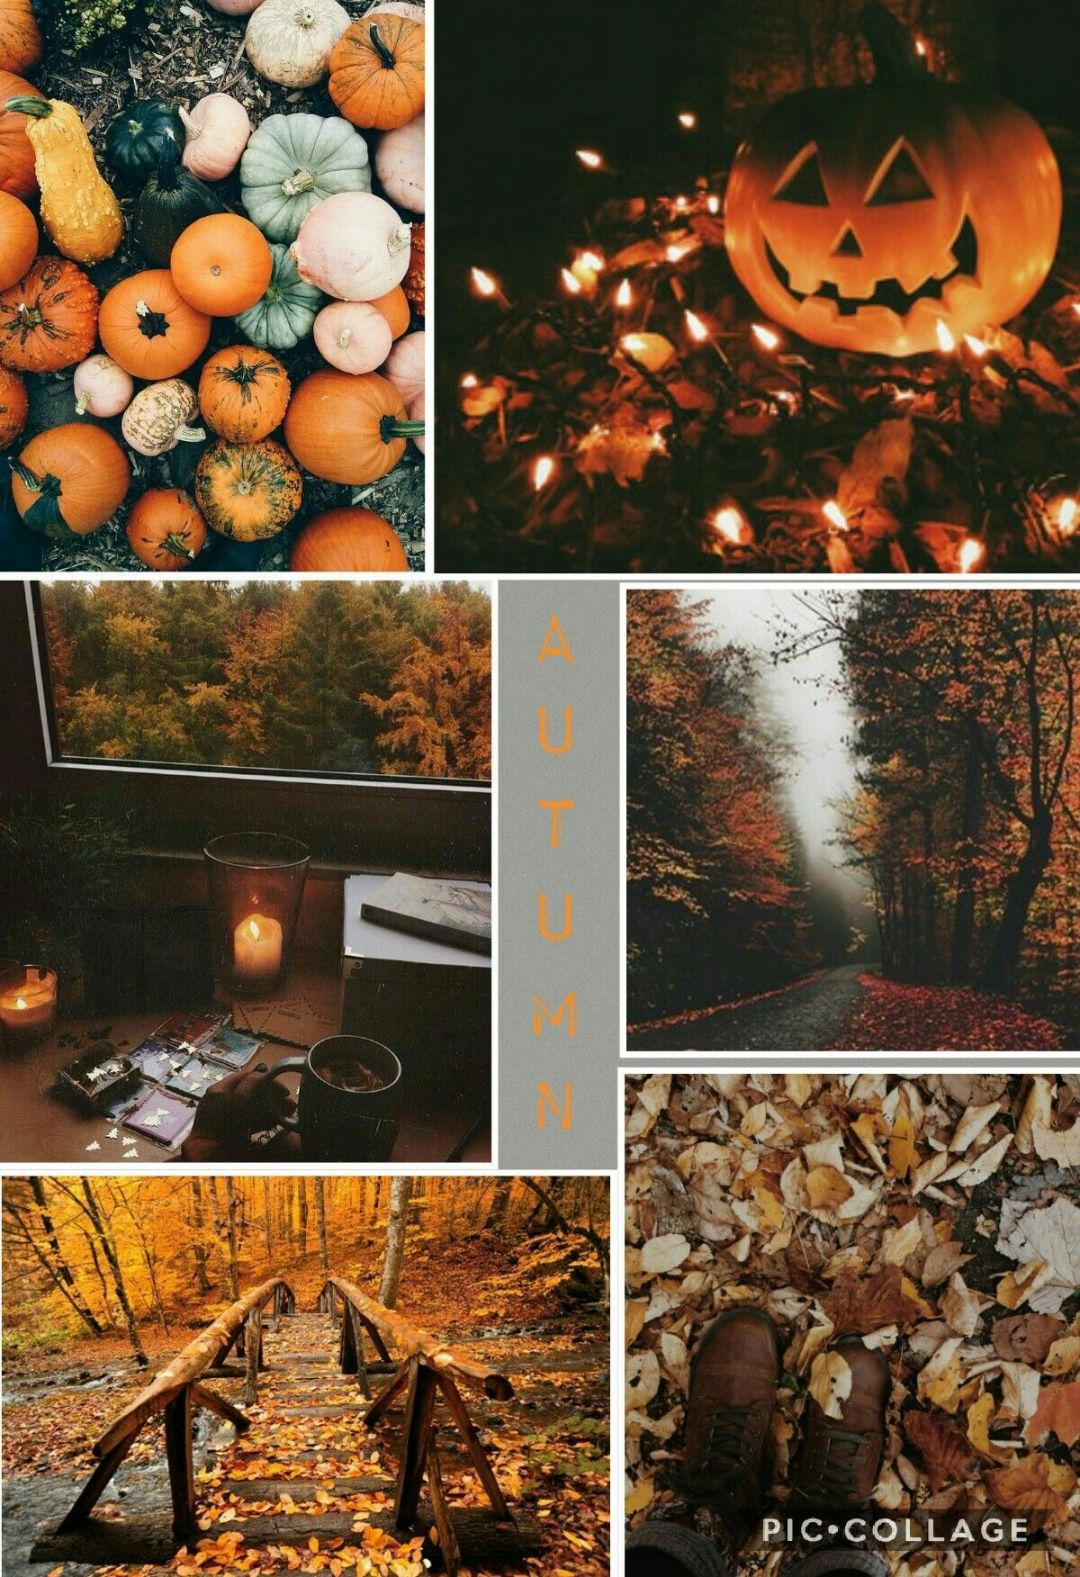 55 Hello Autumn Aesthetic Hd Wallpapers Desktop Background Android Iphone 1080p 4k 1200x1752 2020